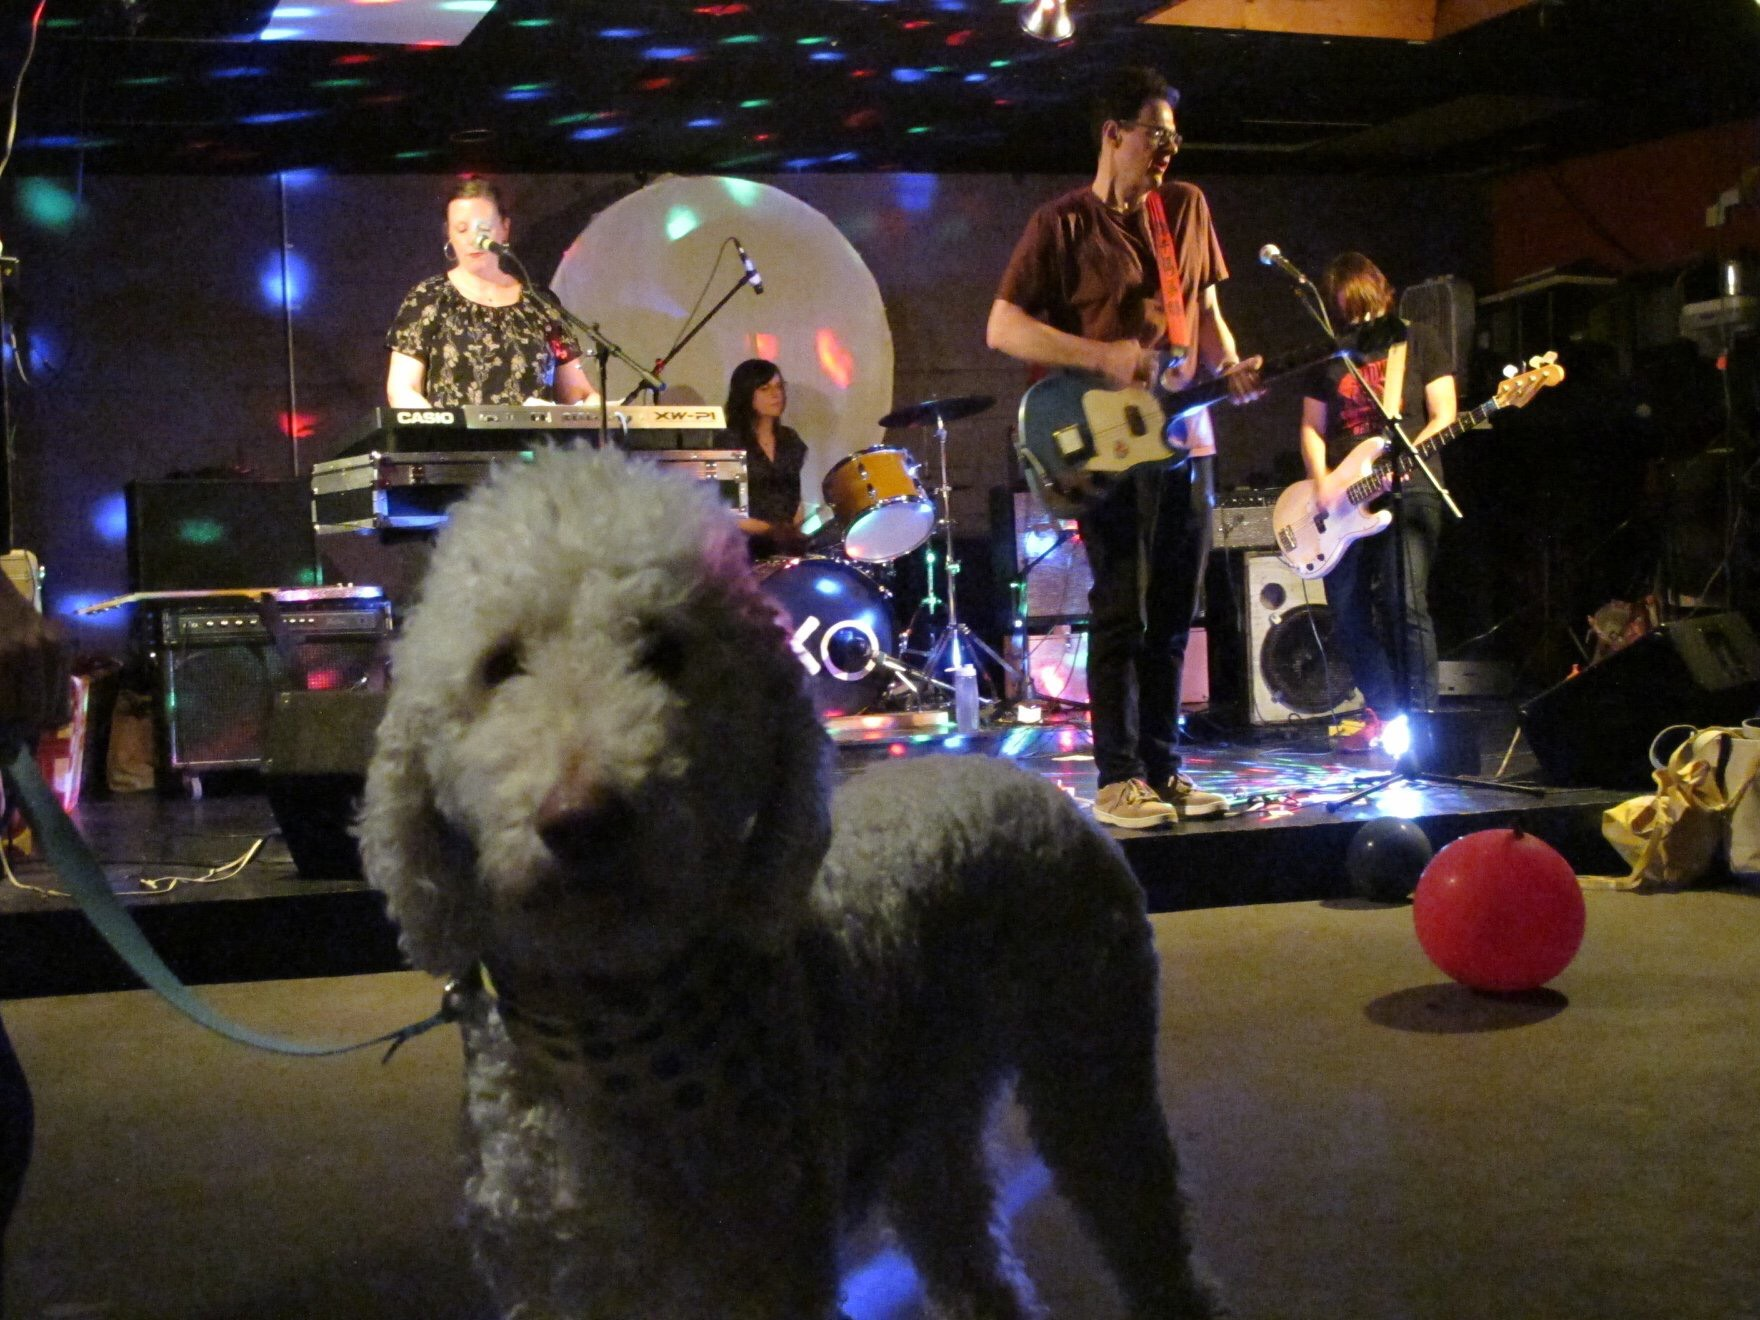 Horizontal Hold playing live. Also, dog. CREDIT: Mimi McLaughlin